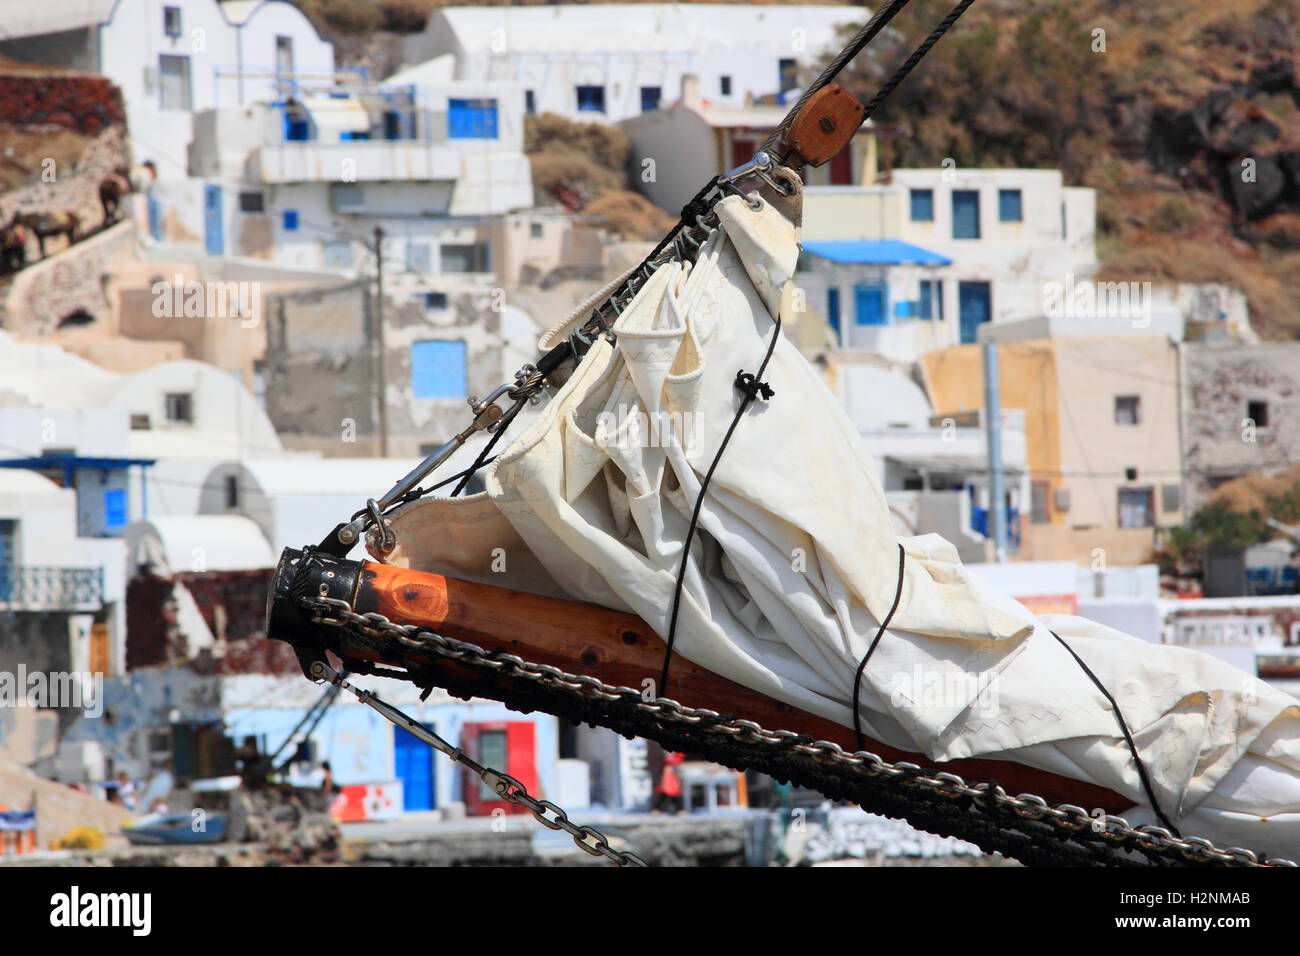 Saling ship in the old port of oia Santorini island Greece - Stock Image